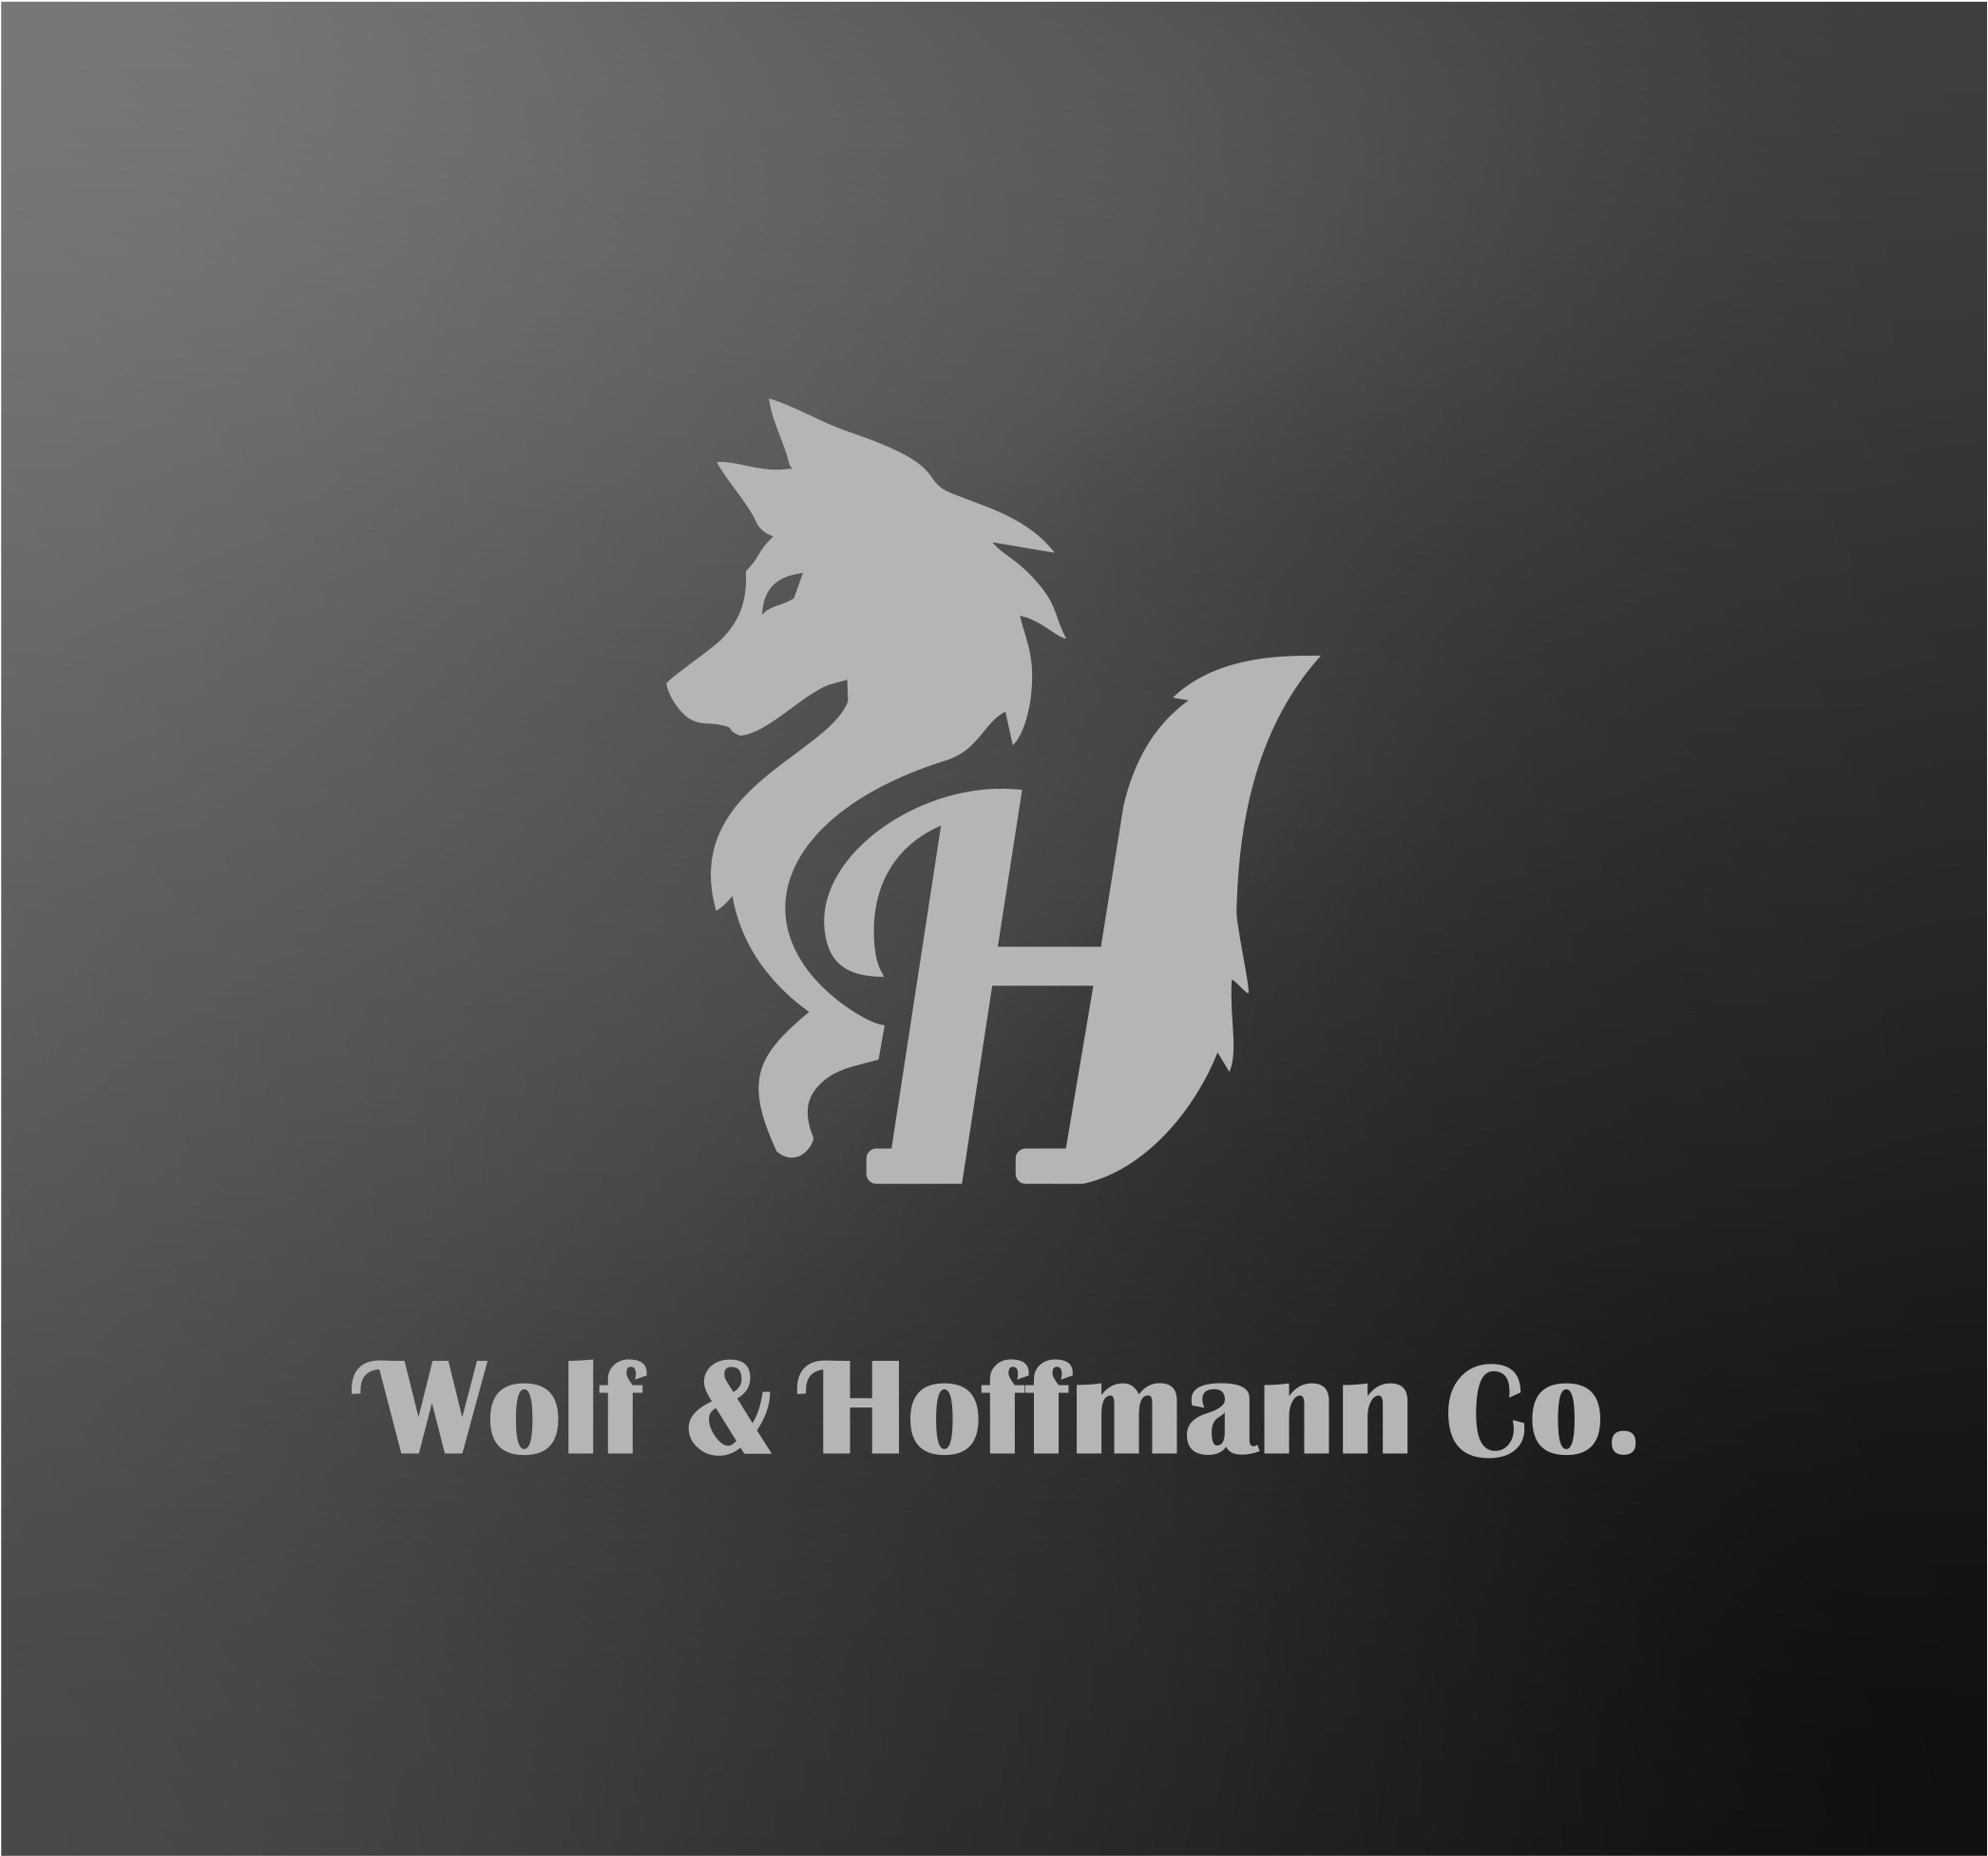 Wolf & Hoffmann Co. Holding Company